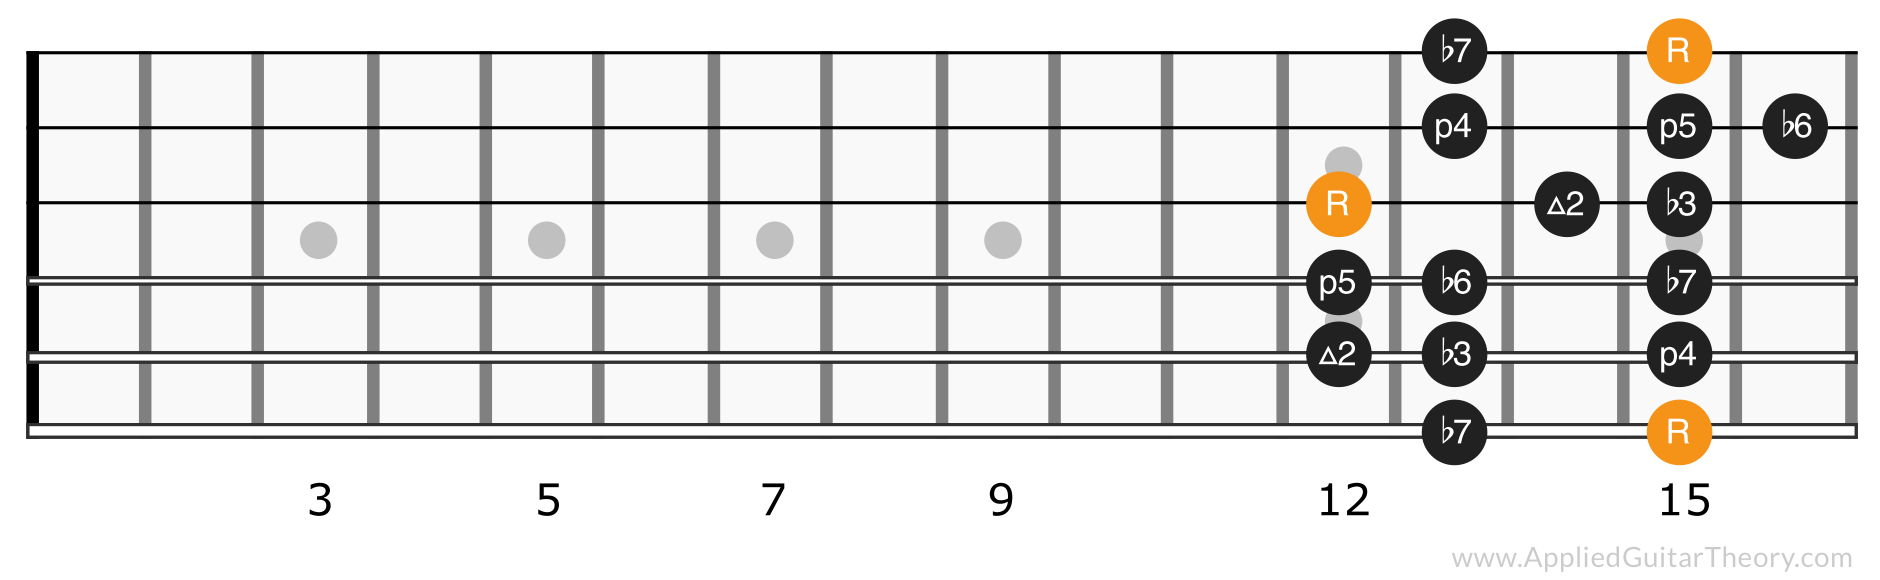 Minor scale position 5